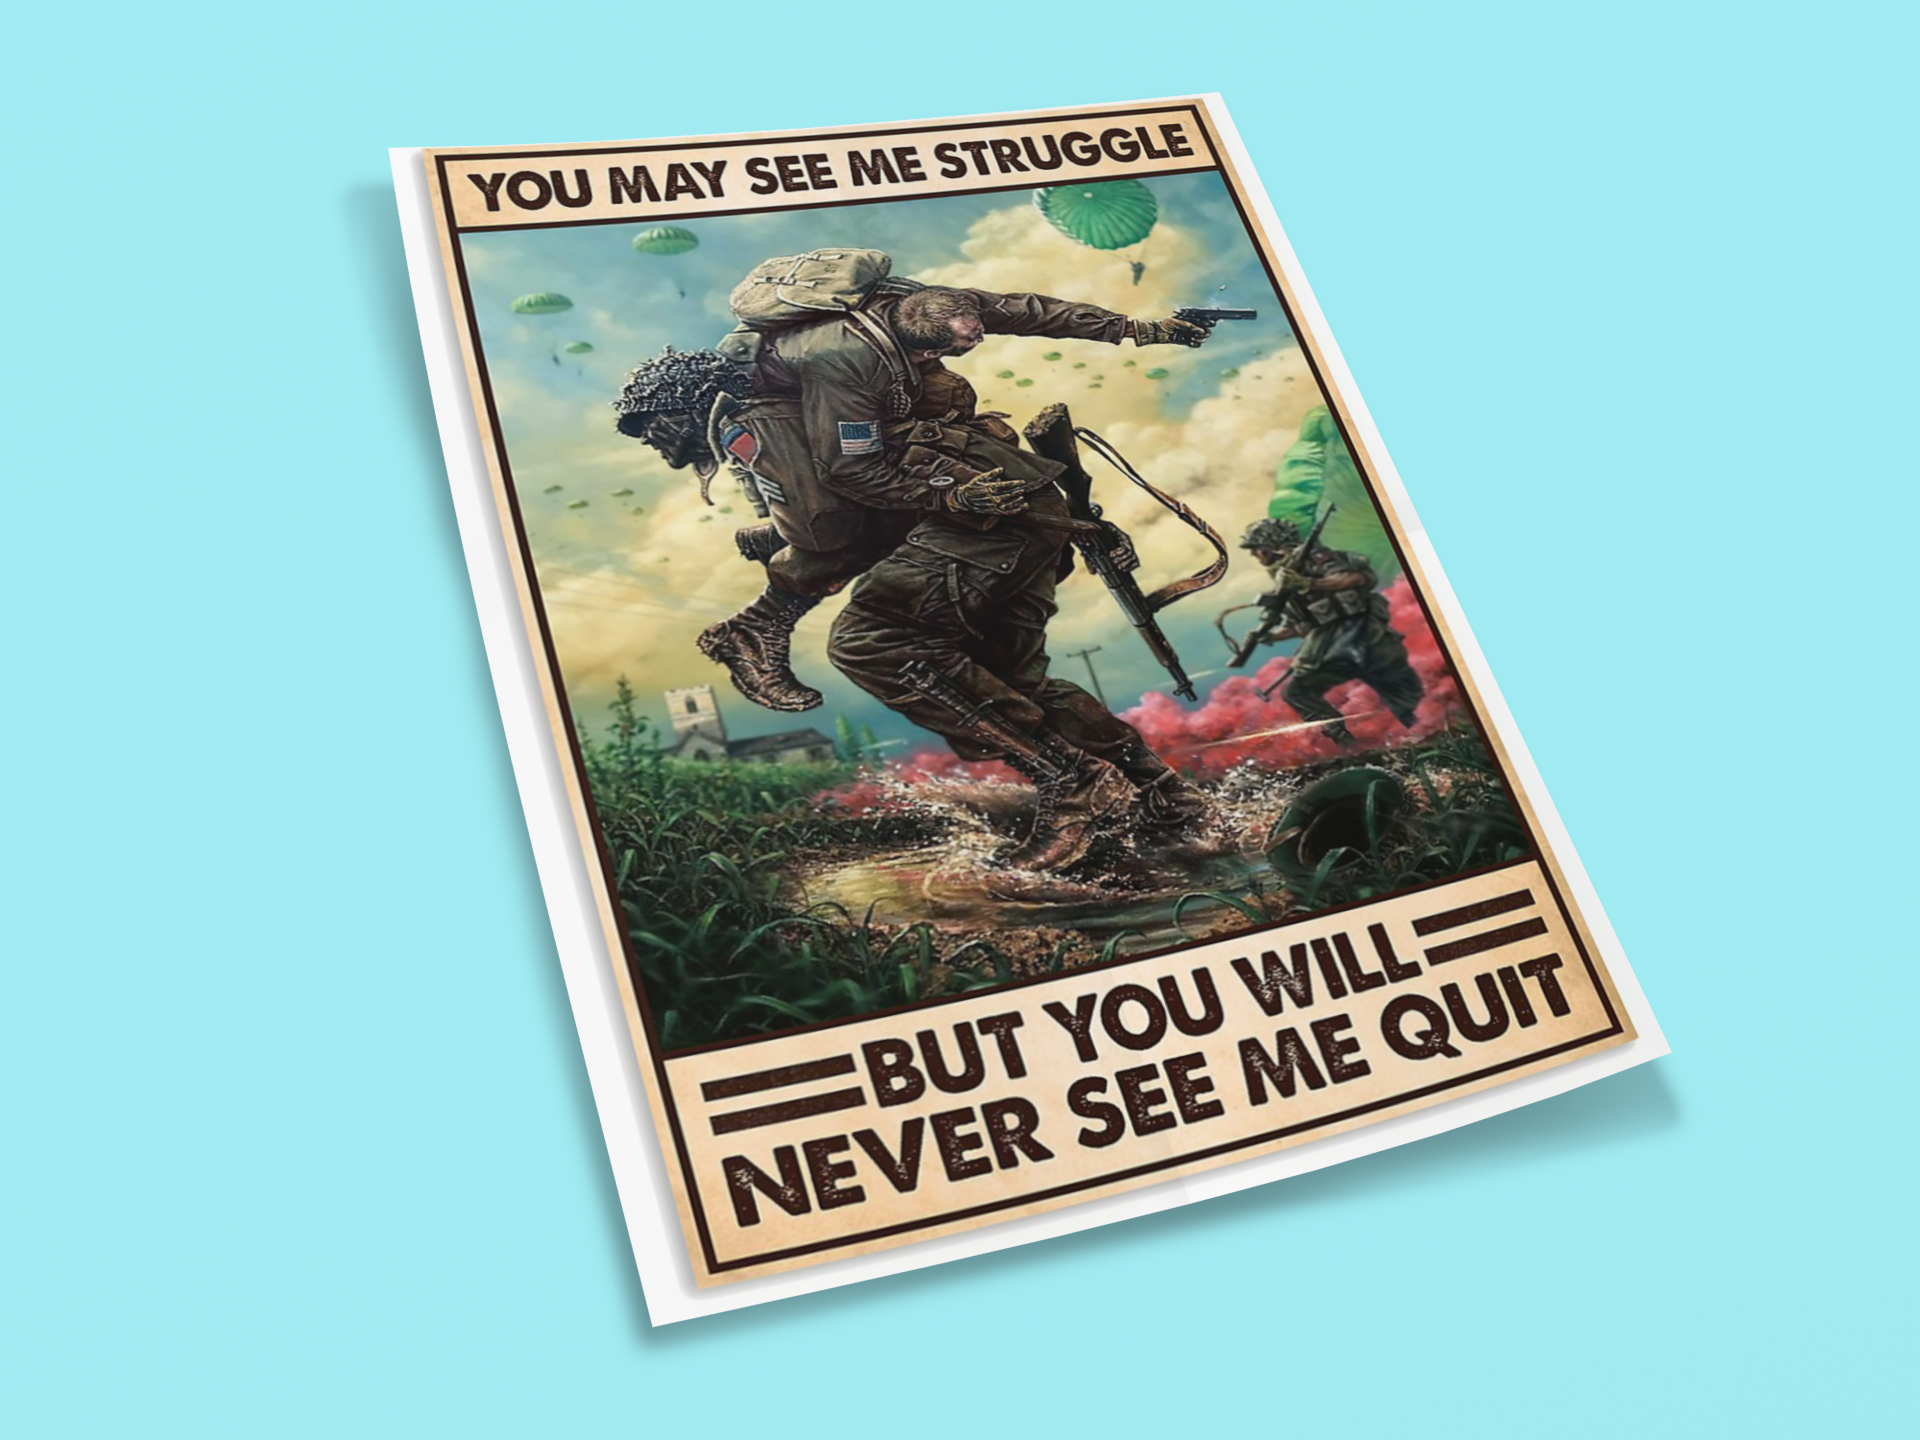 Veteran you may see me struggle but you will never see me quit poster